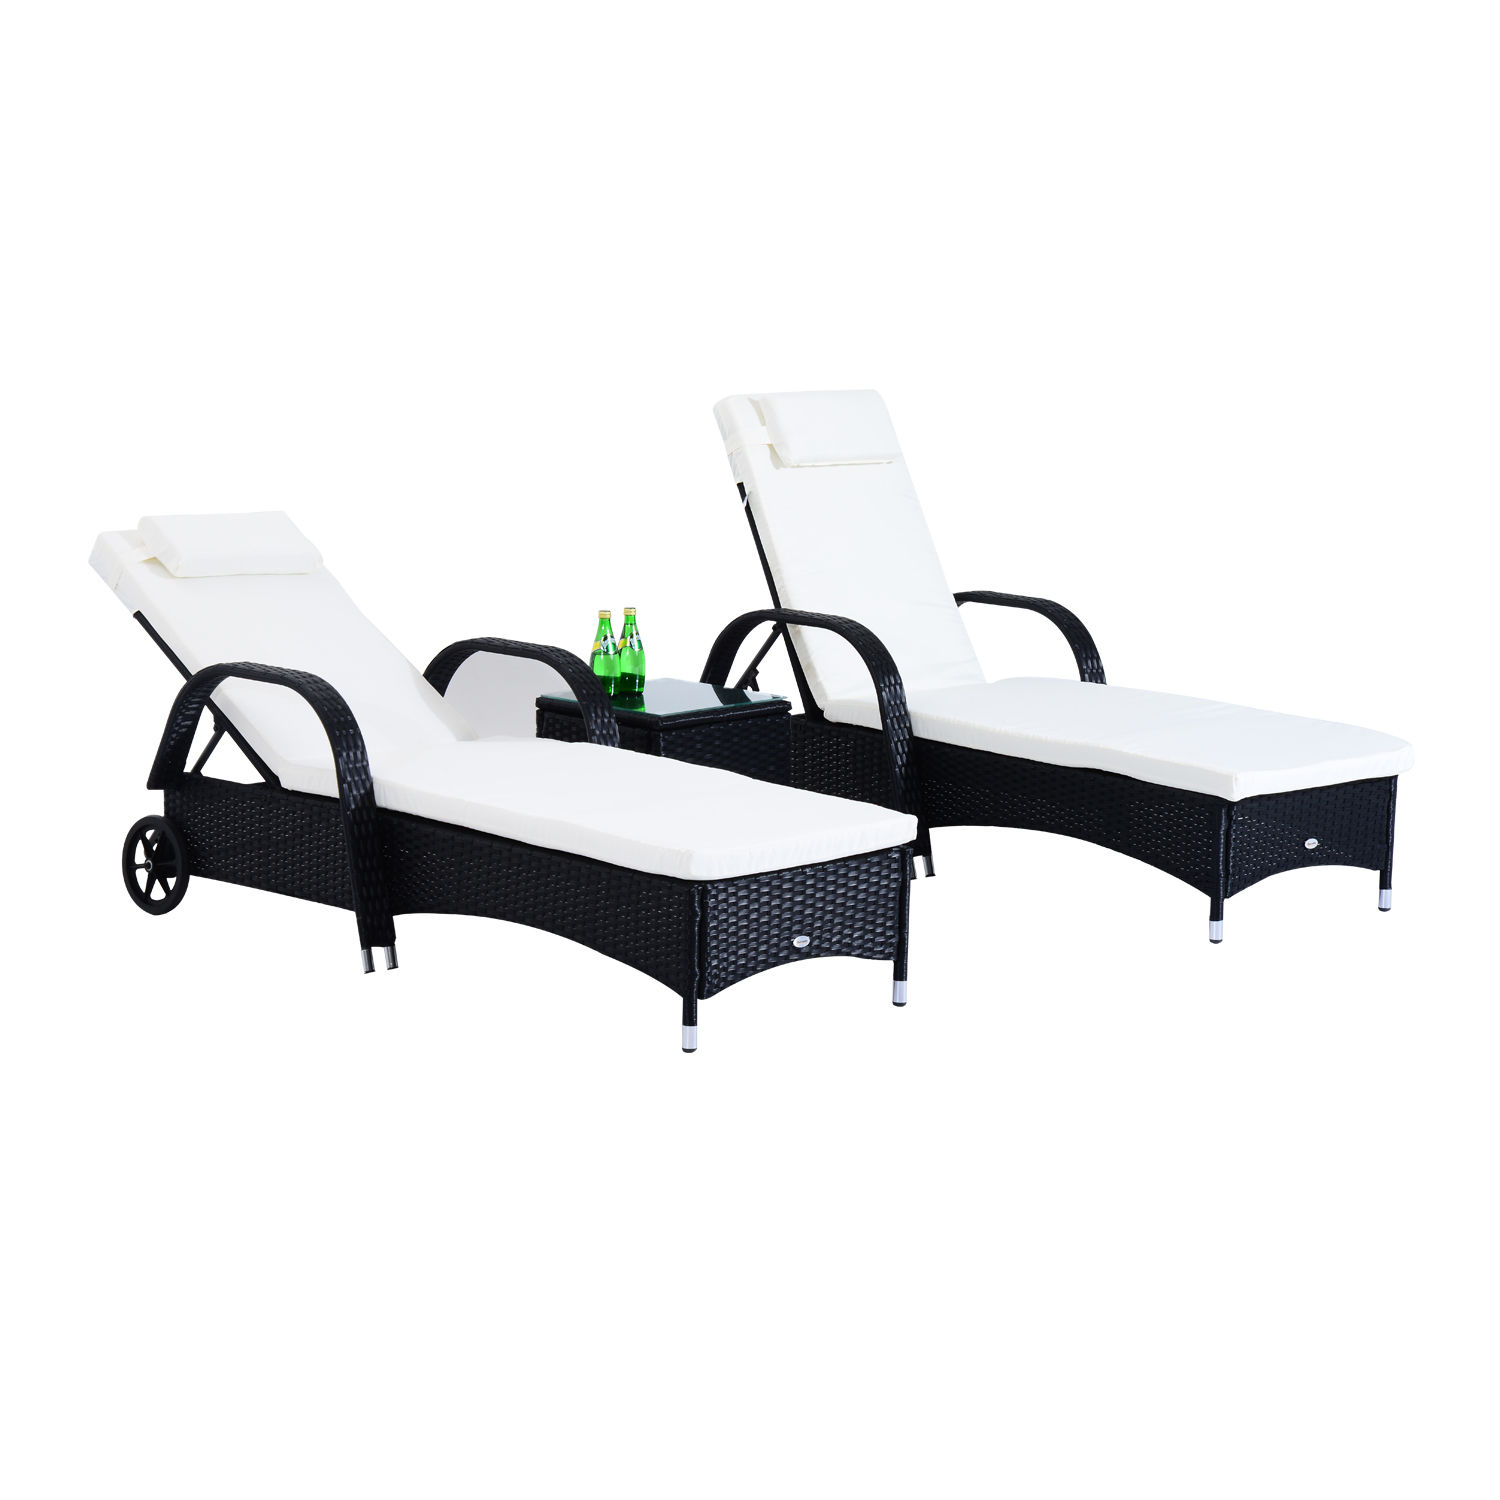 Image of £229.99 Outsunny 3 Pcs Rattan Loungers Set-Black / Garden Furniture PC Sun Lounger Recliner Bed Chair Set with Side Table Patio Outdoor Wicker (Black) 3PC Sofa Day Black 841-091BK 5055974822061